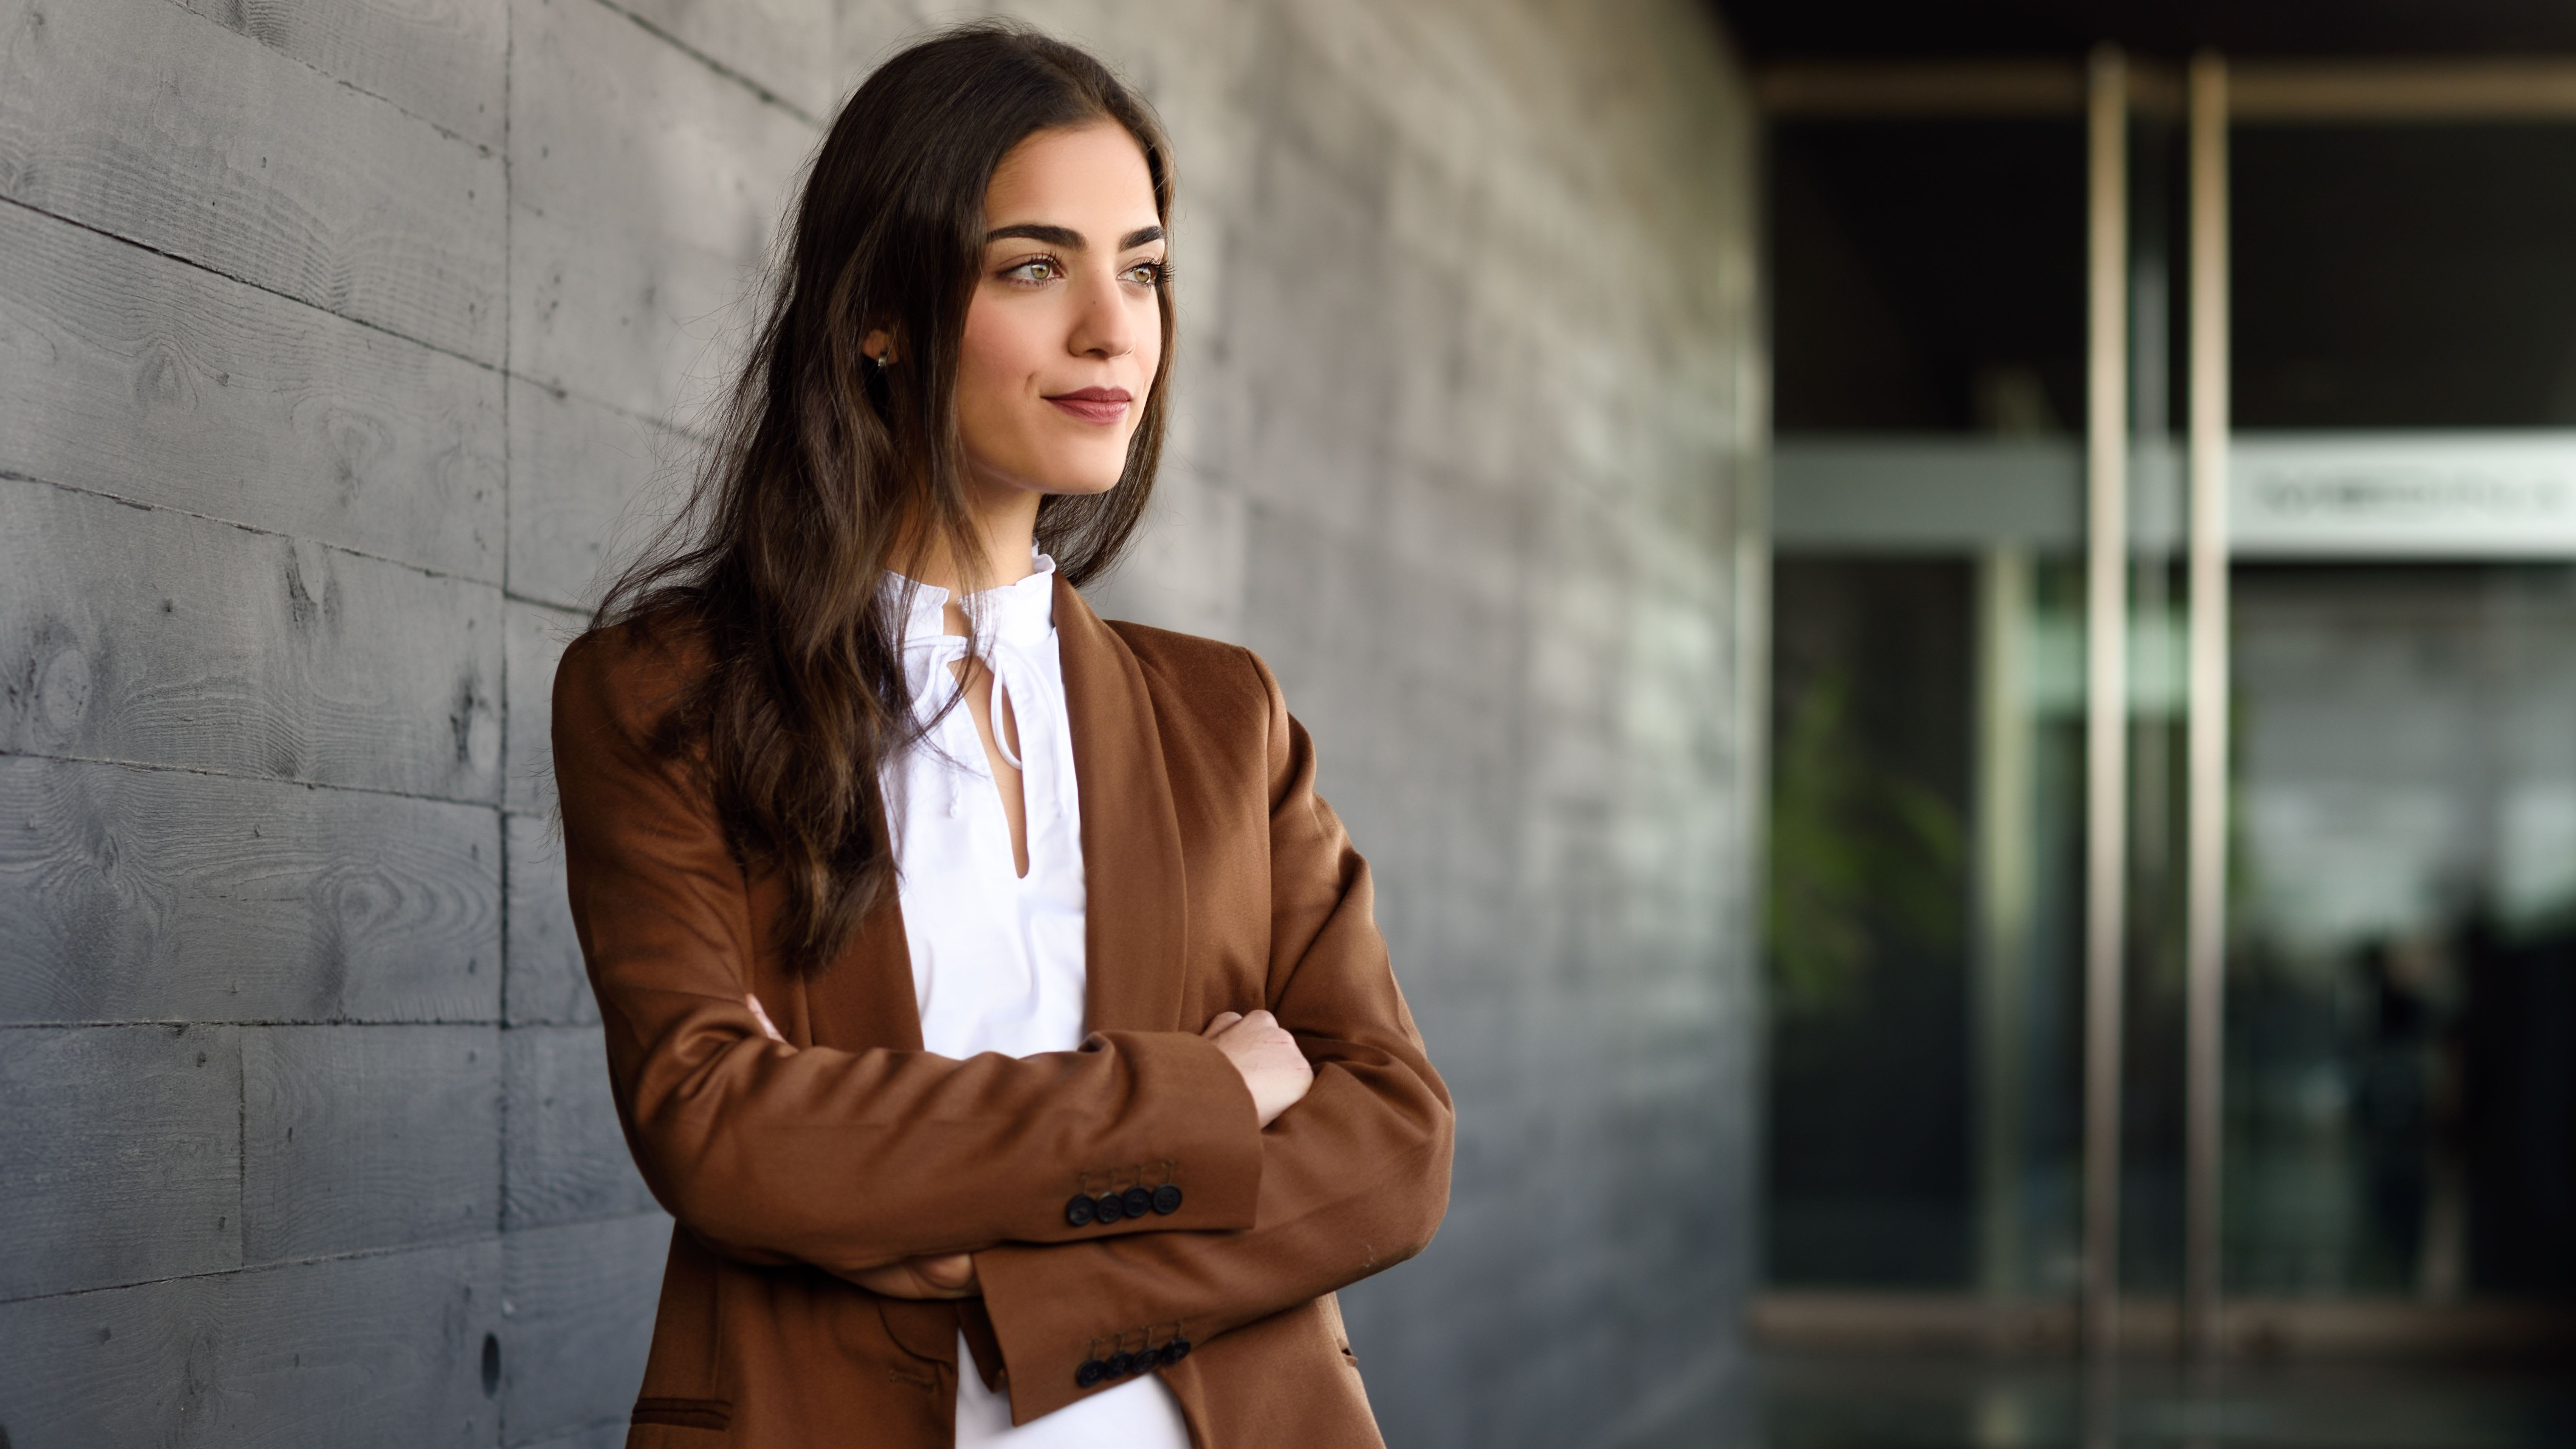 60b49a4cf7672 The 6 Rules of Interview Outfits You Probably Don t Know